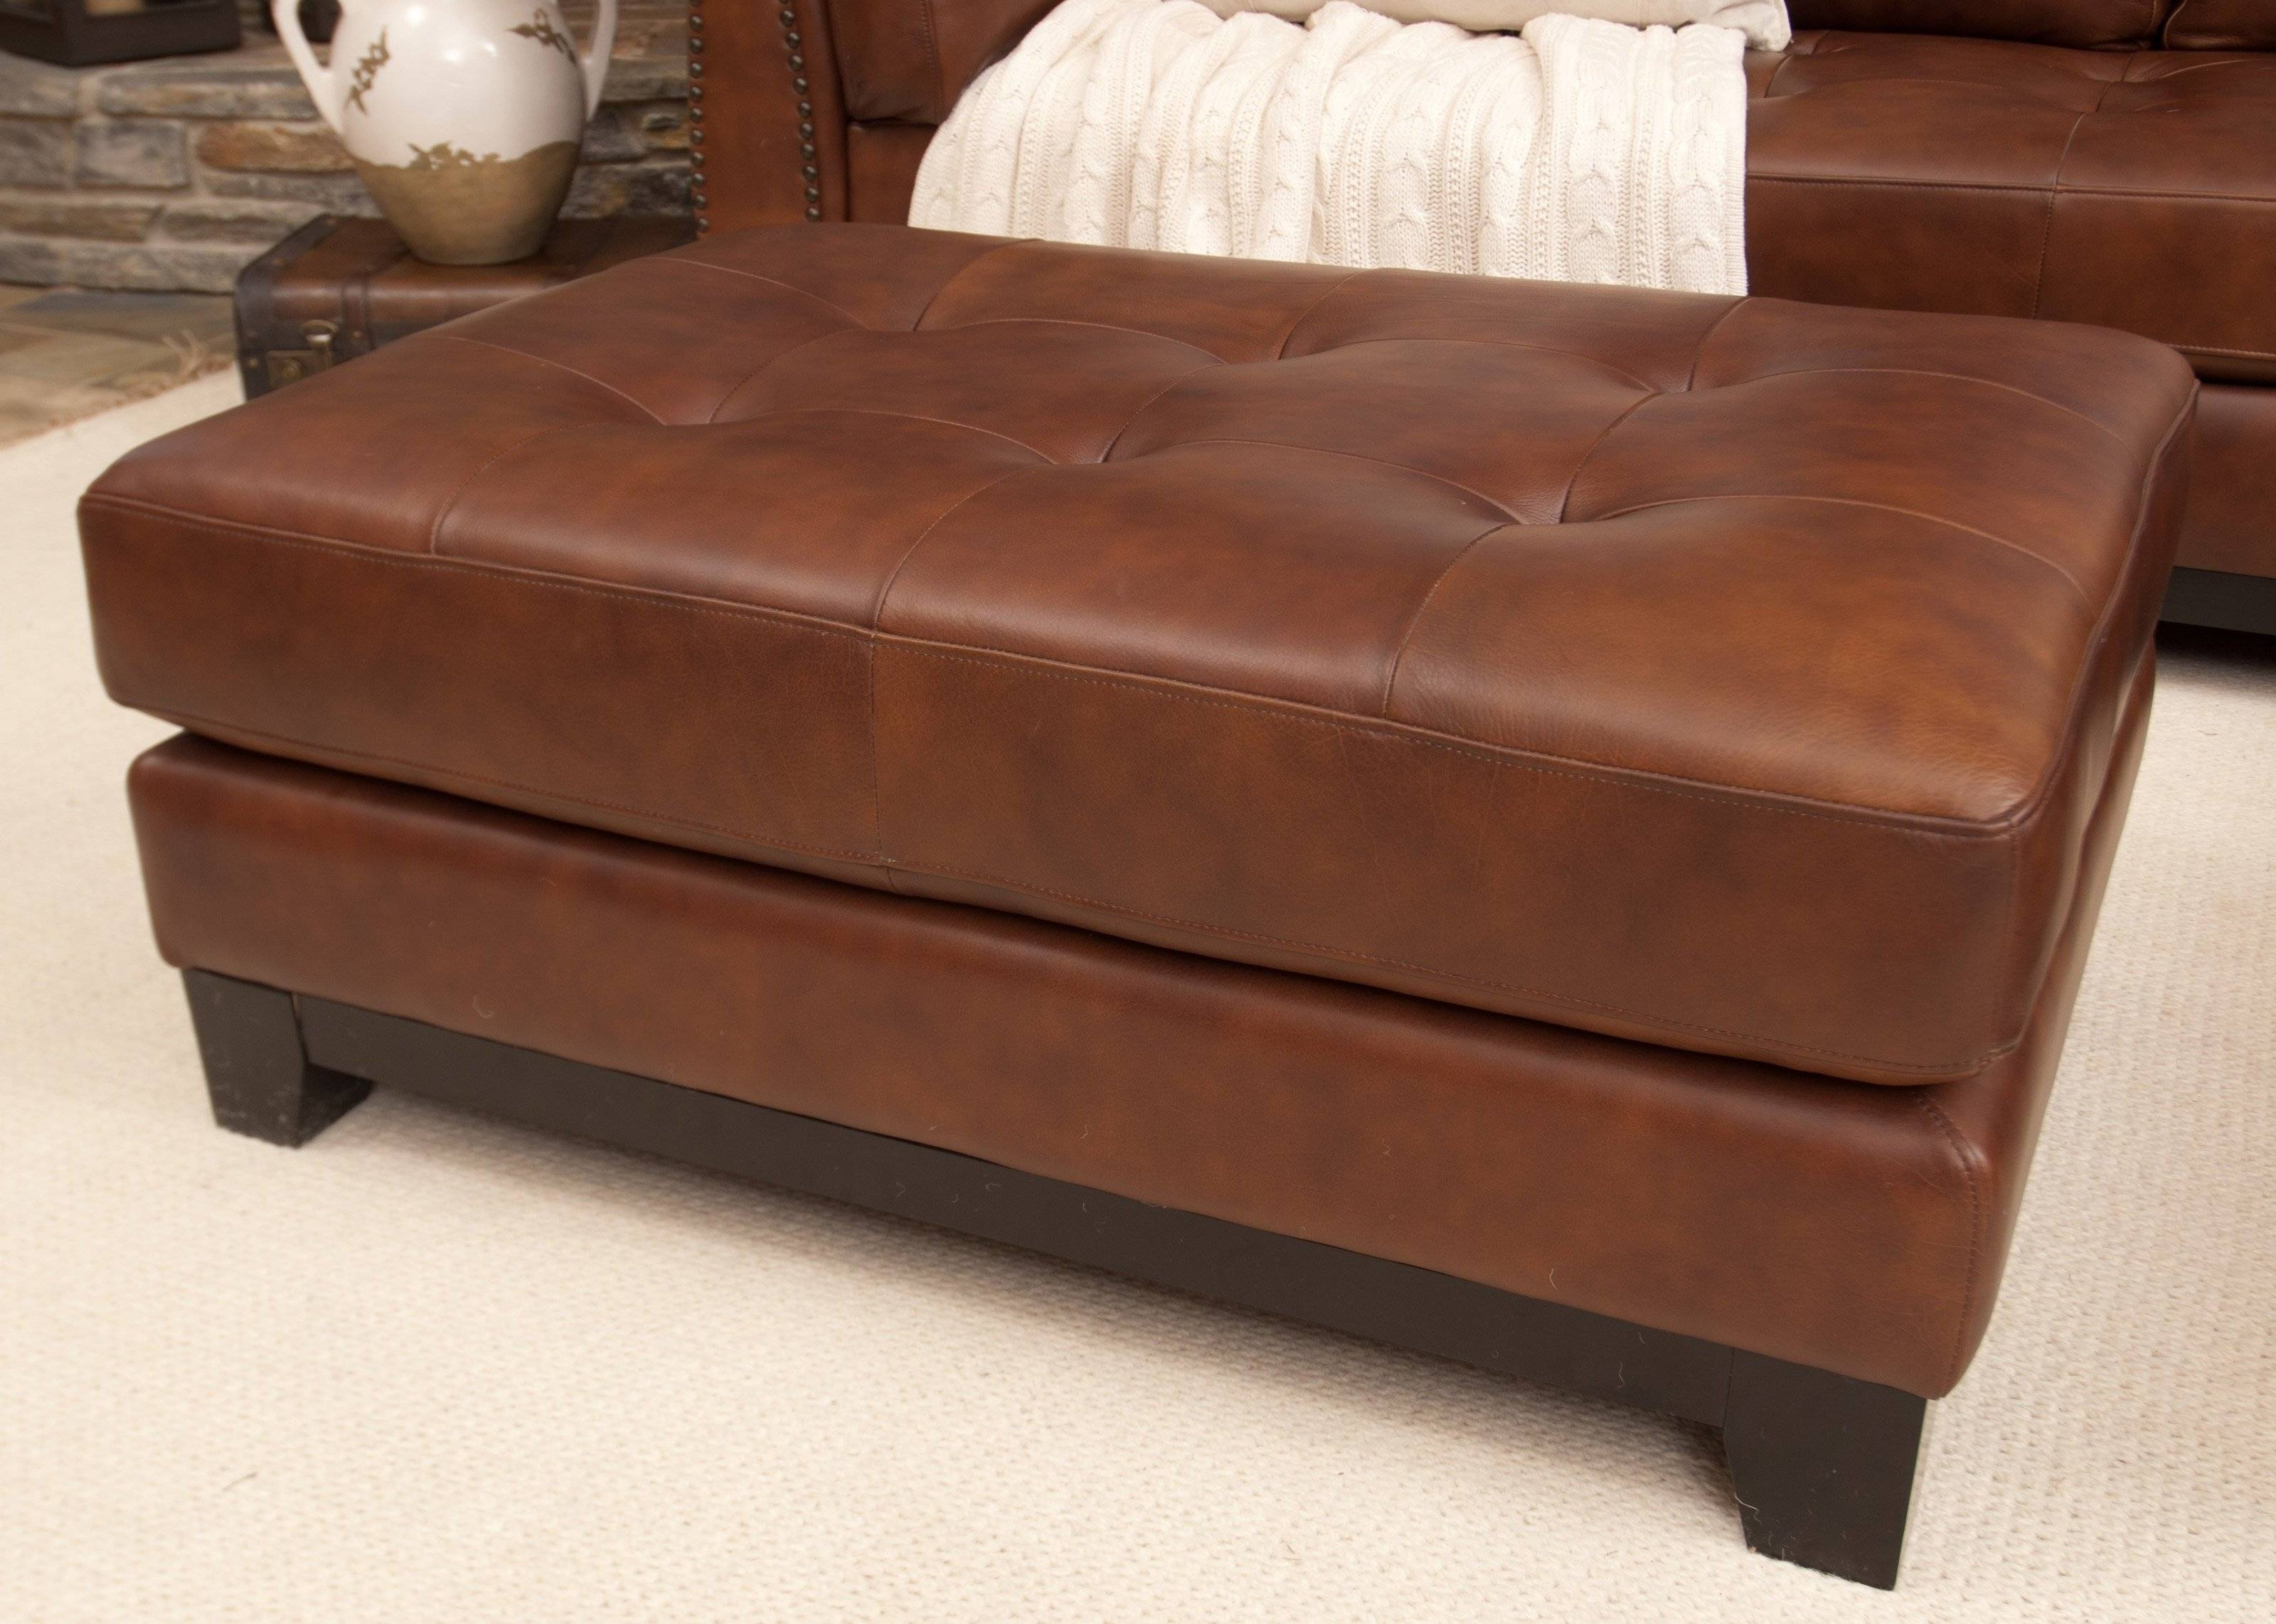 Coffee Table: Cool Leather Ottoman Coffee Table Designs Leather within Brown Leather Ottoman Coffee Tables (Image 15 of 30)